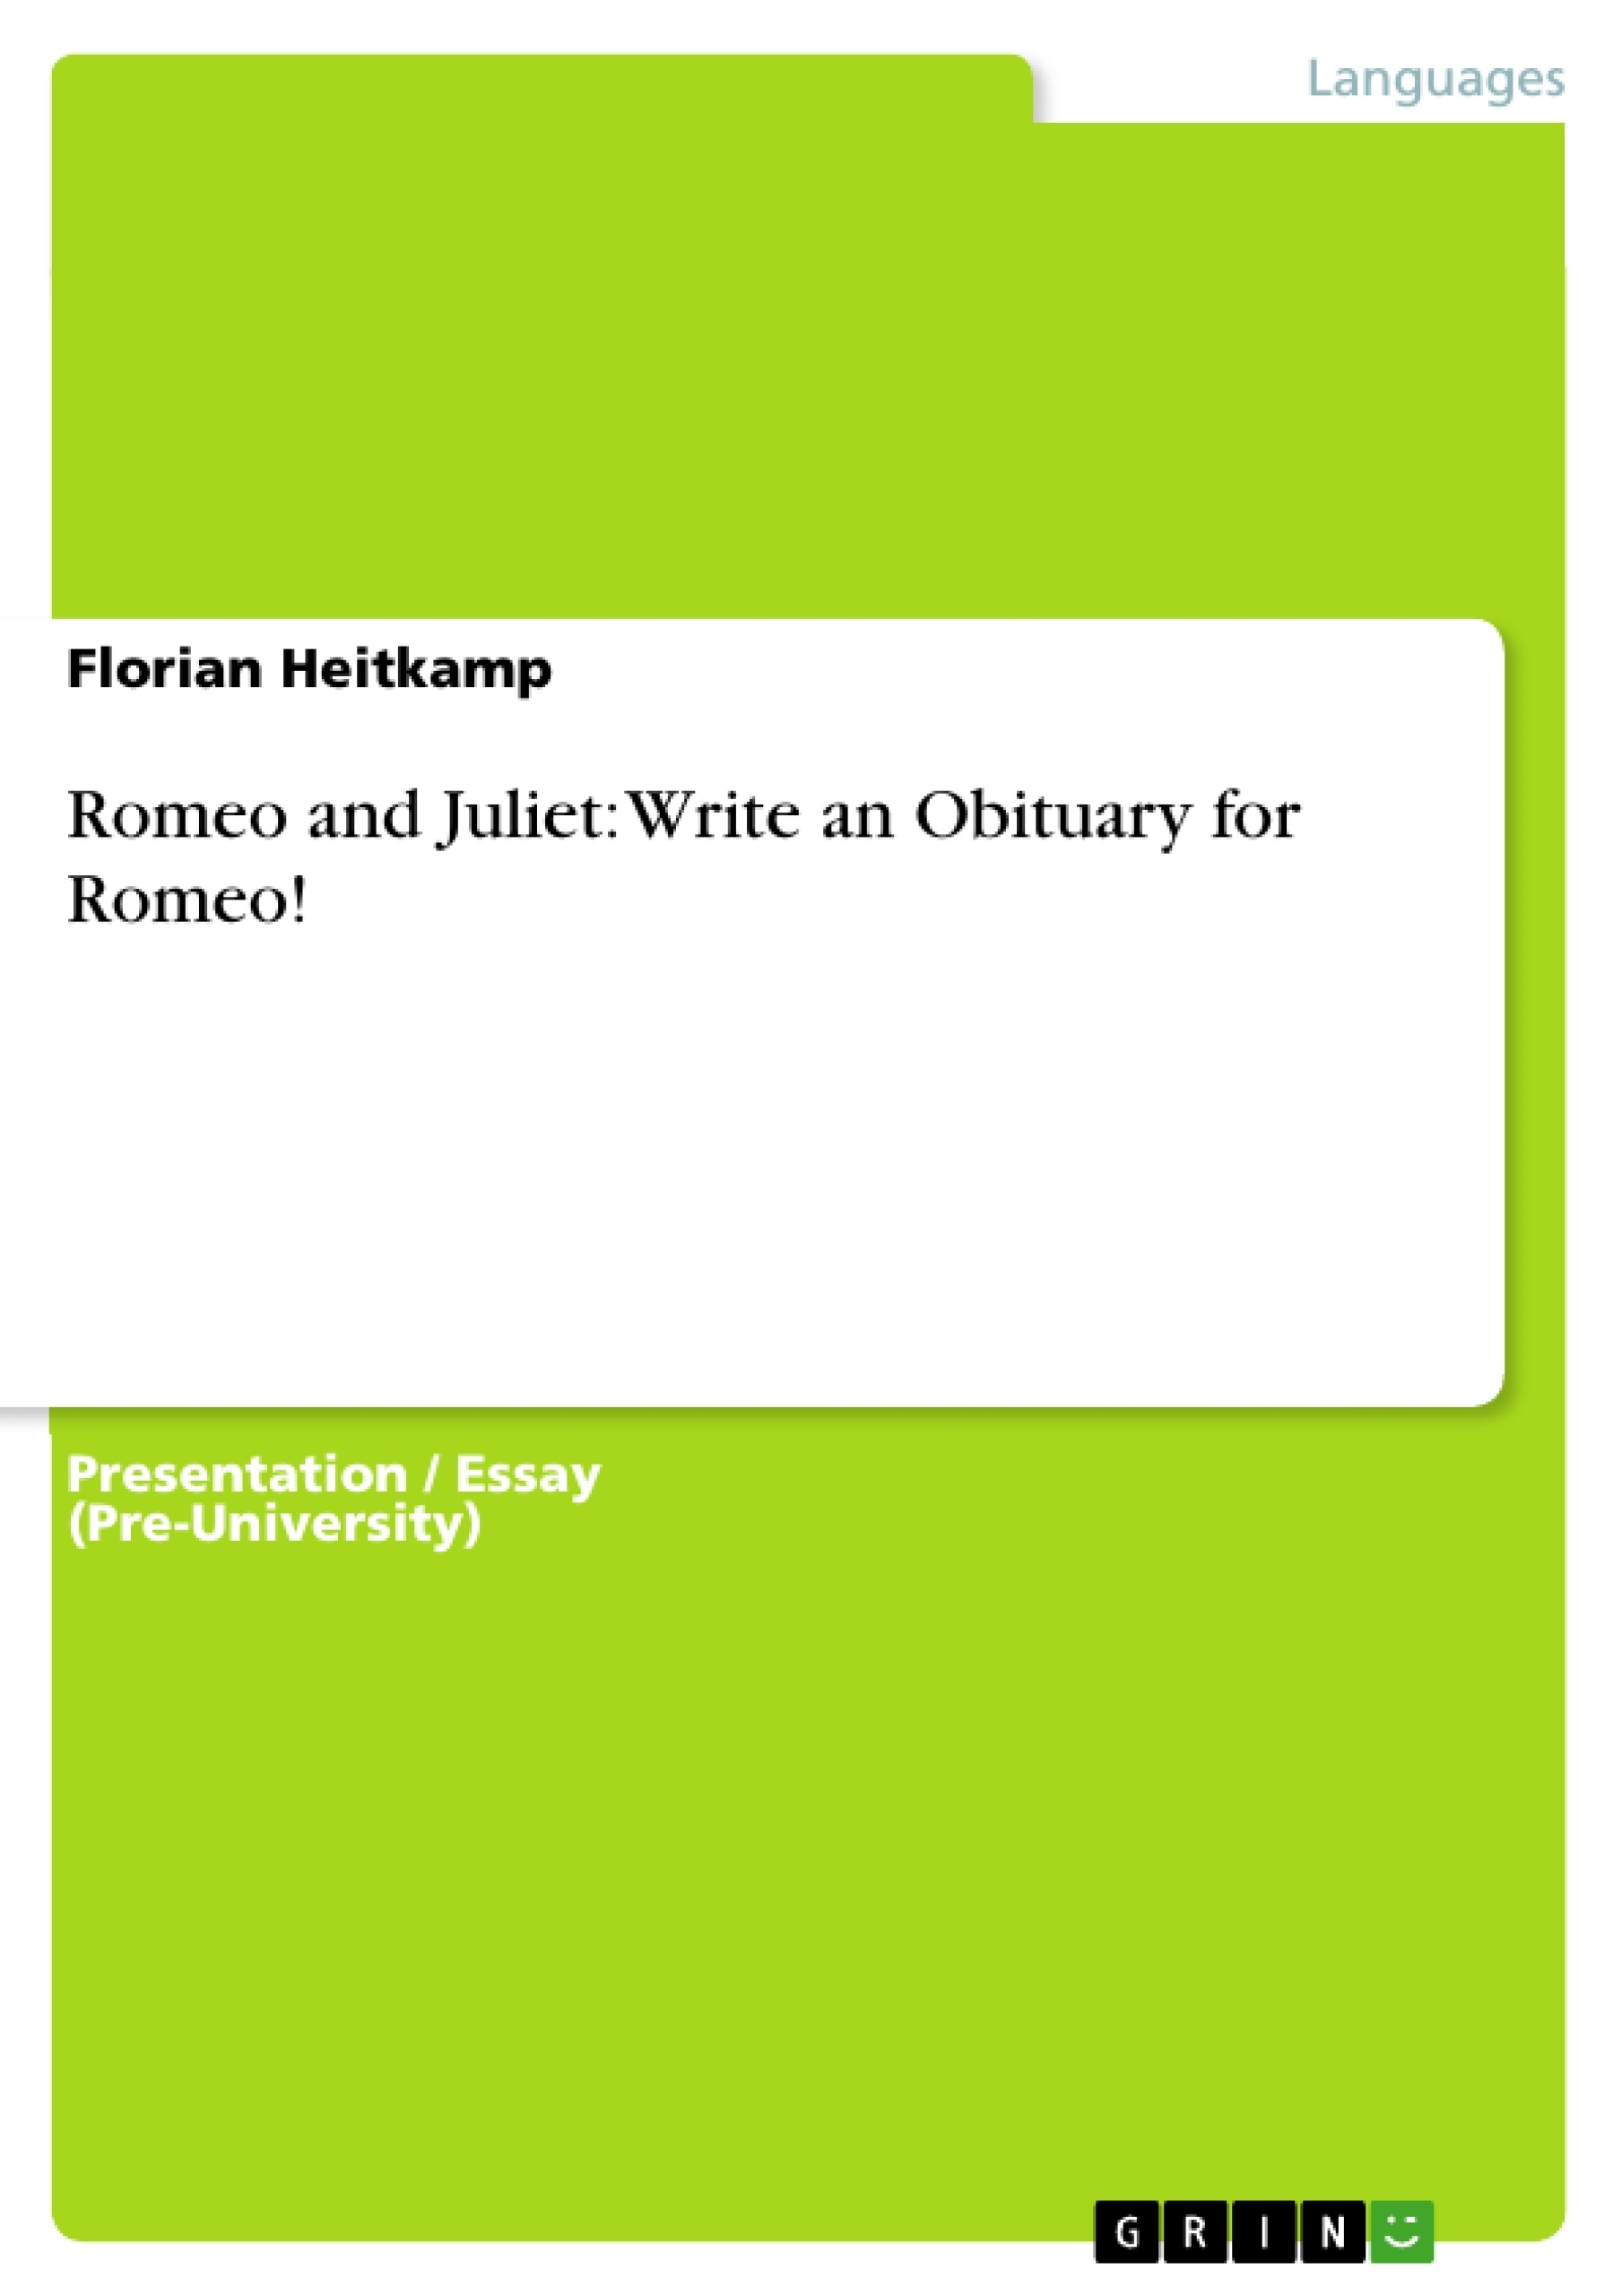 romeo and juliet write an obituary for romeo publish your romeo and juliet write an obituary for romeo publish your master s thesis bachelor s thesis essay or term paper